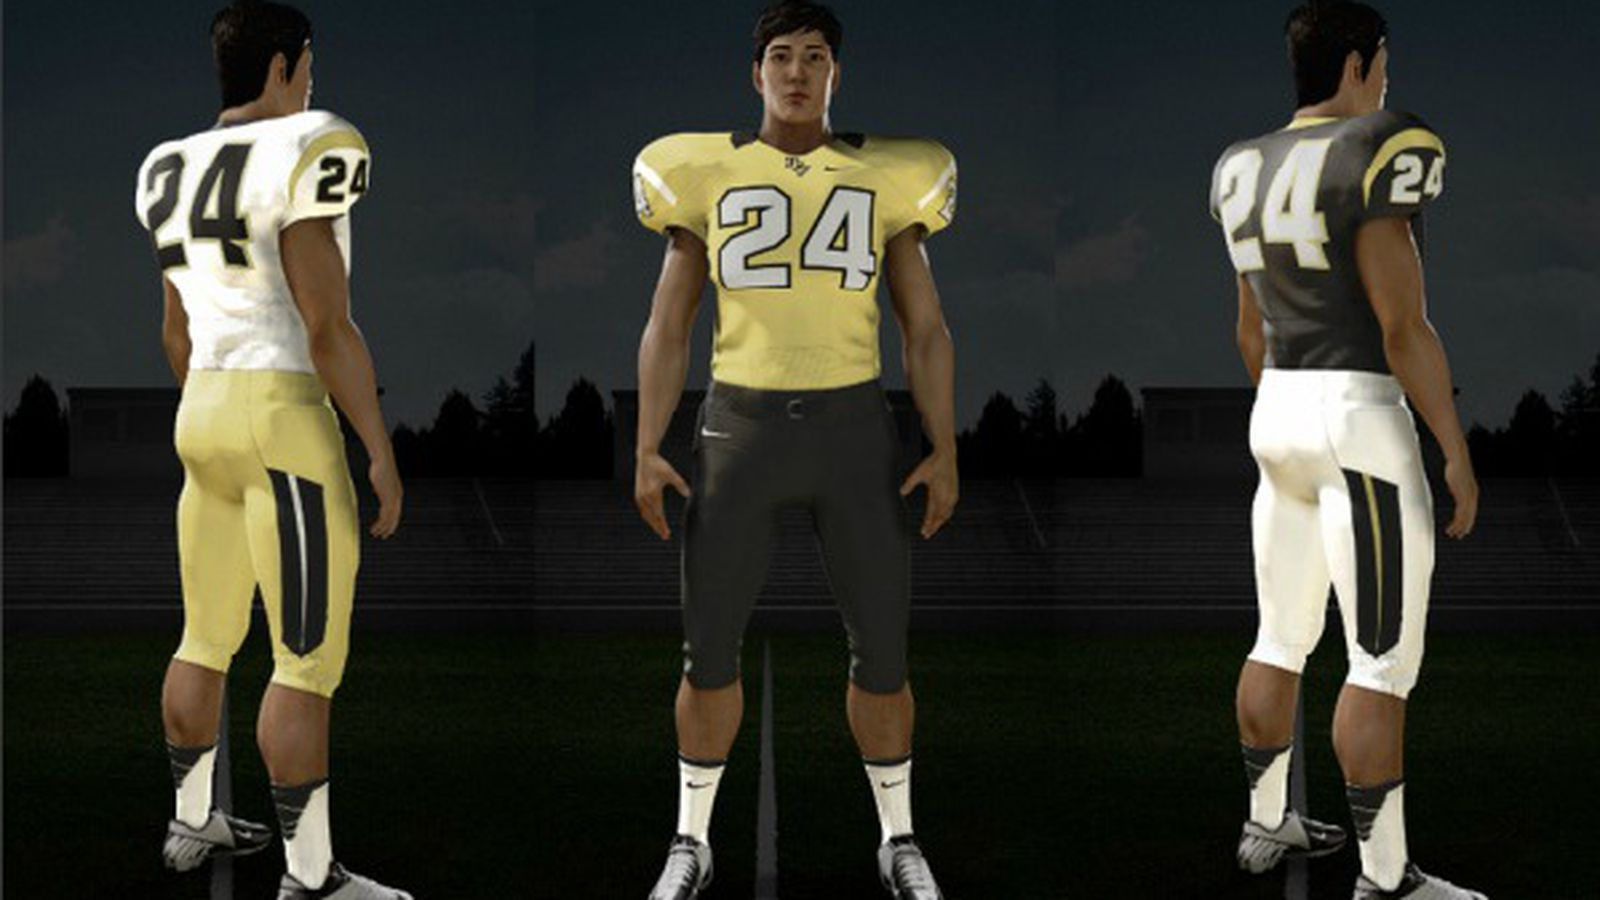 2013 Ucf Getting New Football Uniforms As Modeled By The